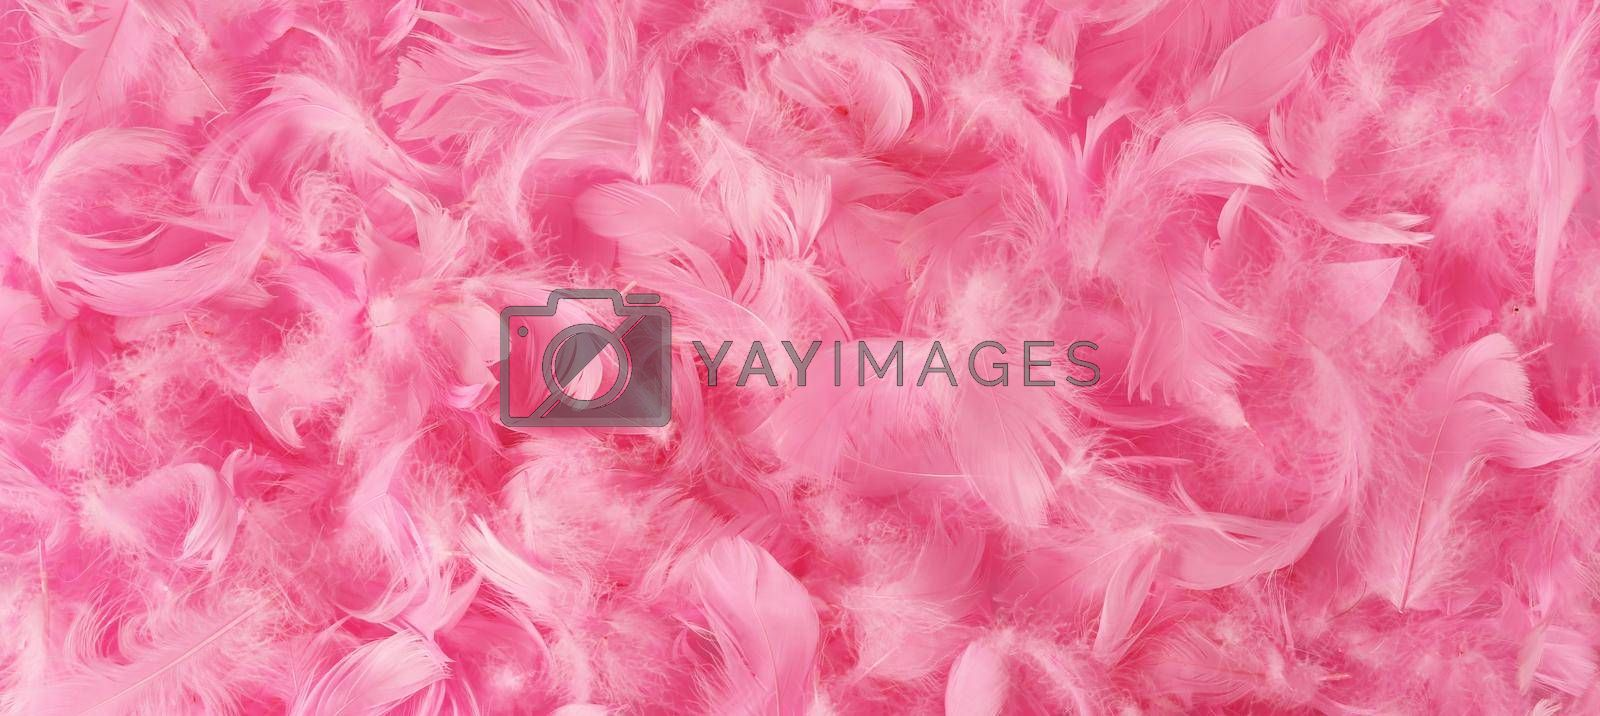 Background with beautiful pink feathers. Pastel pink feather decorations. Horizontal flat lay. Copy space